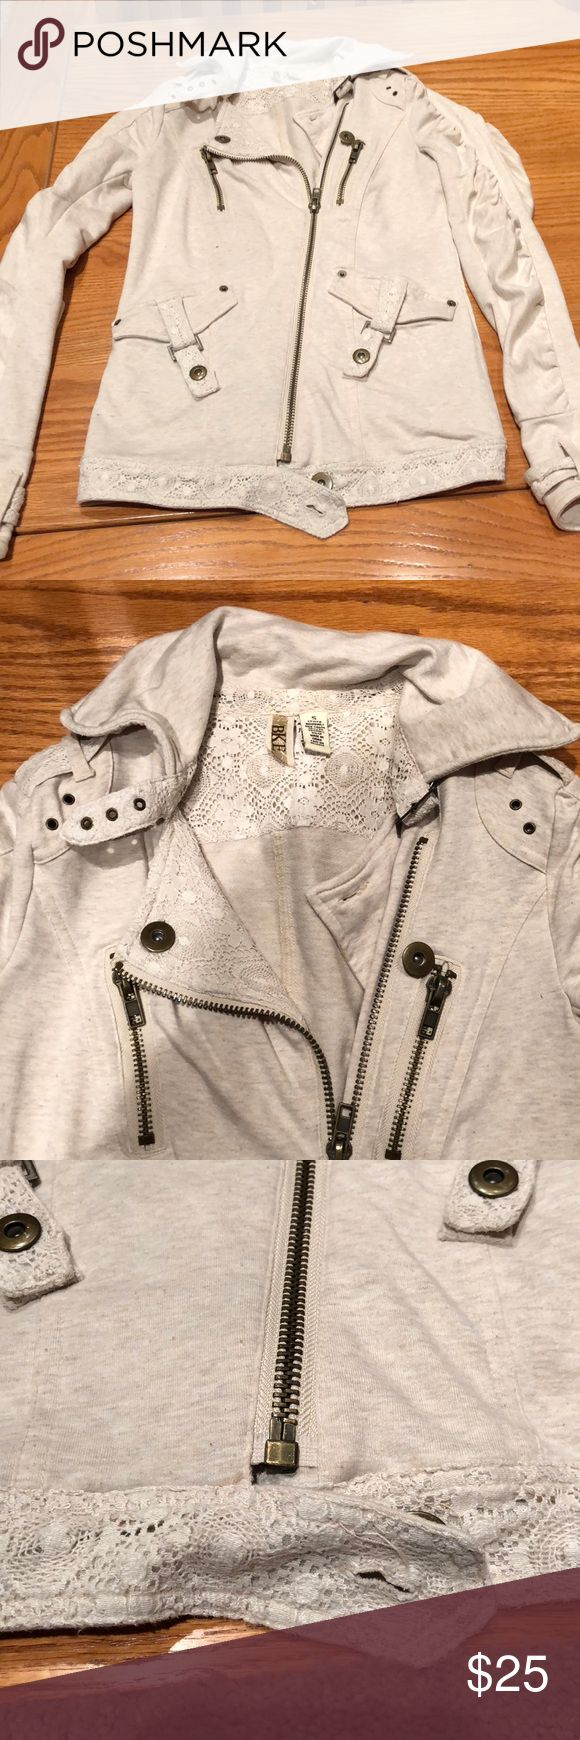 BKE Zip-up Cream zip up with lace detailing. Such a cute stylish piece for winter/fall! BKE Tops Sweatshirts & Hoodies